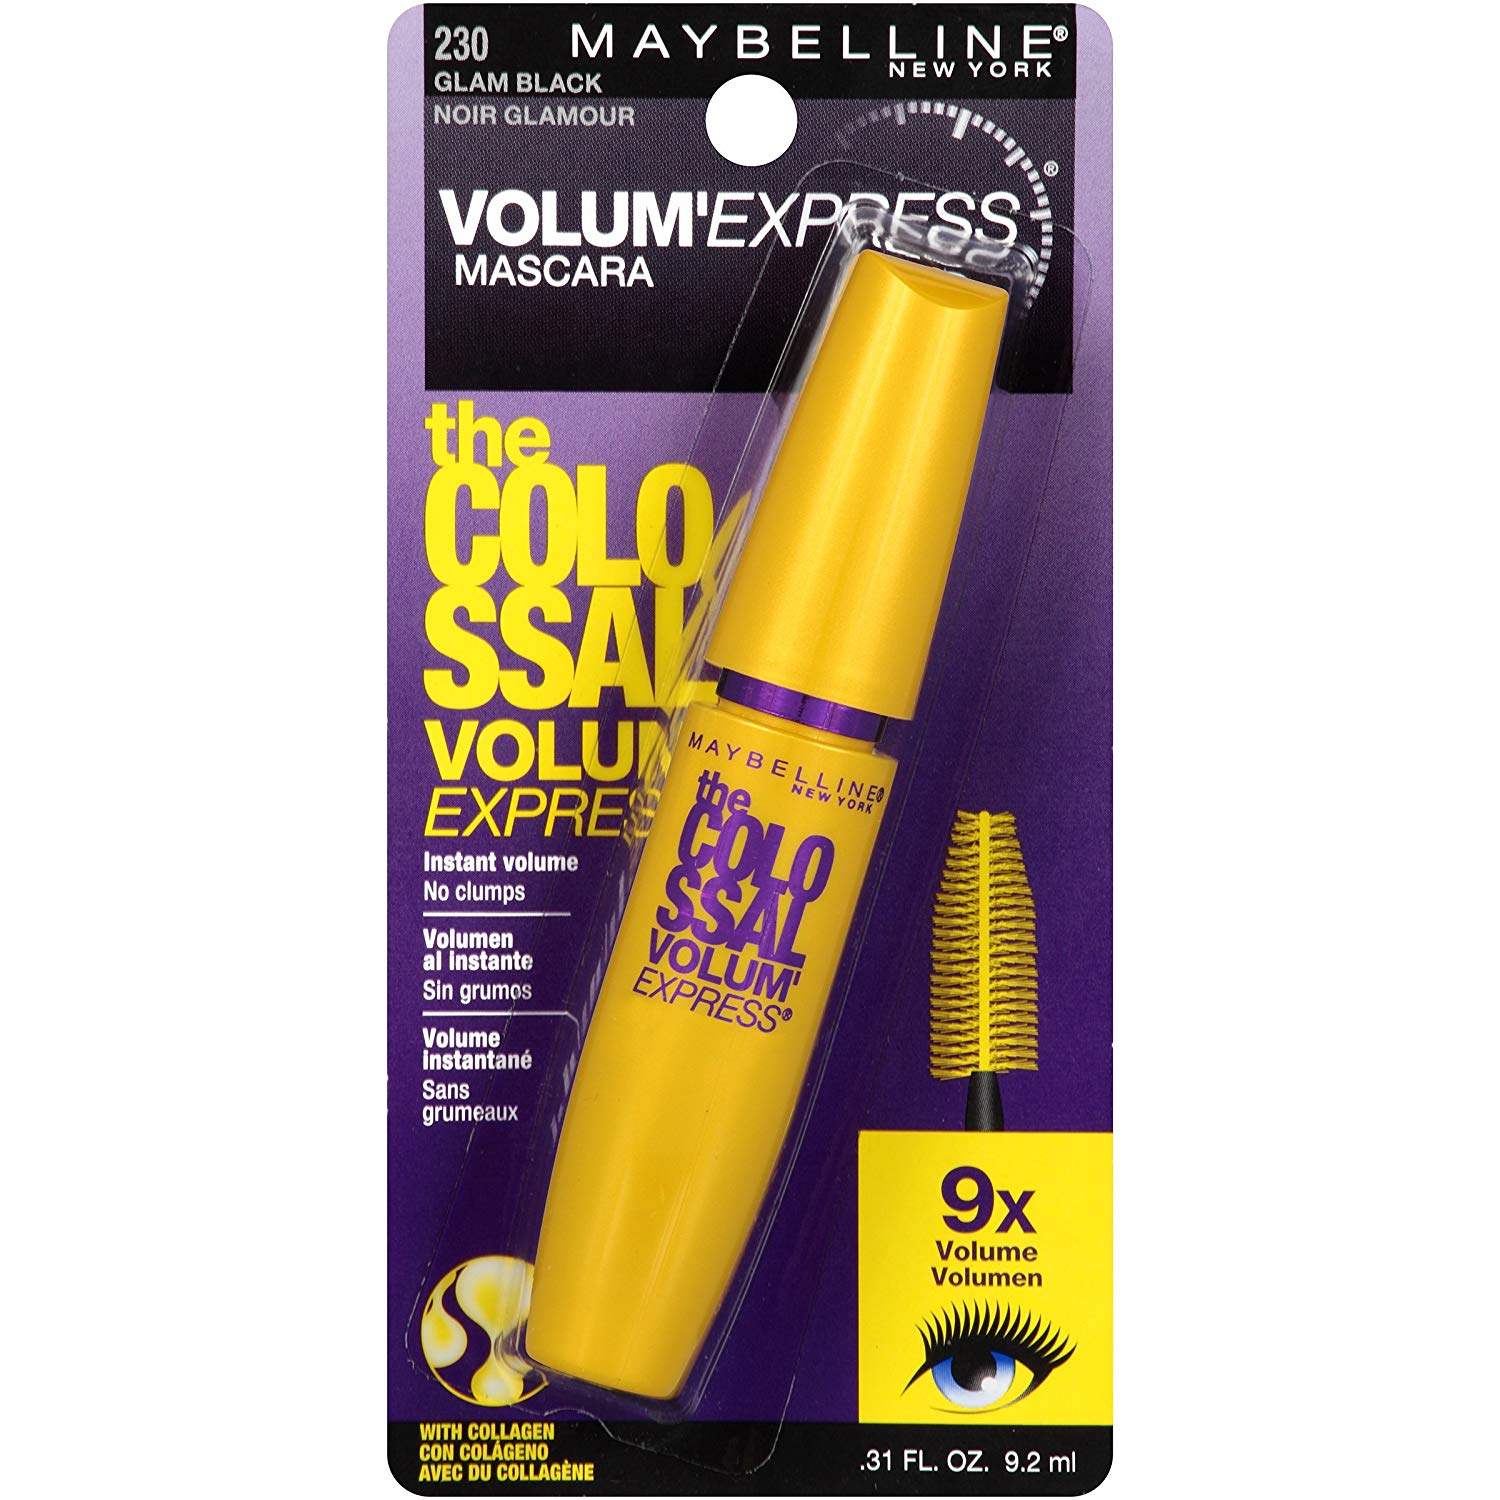 WHOLESALE MAYBELLINE VOLUM EXPRESS THE COLOSSAL WASHABLE MASCARA - GLAM BLACK 230 - 72 PIECE LOT